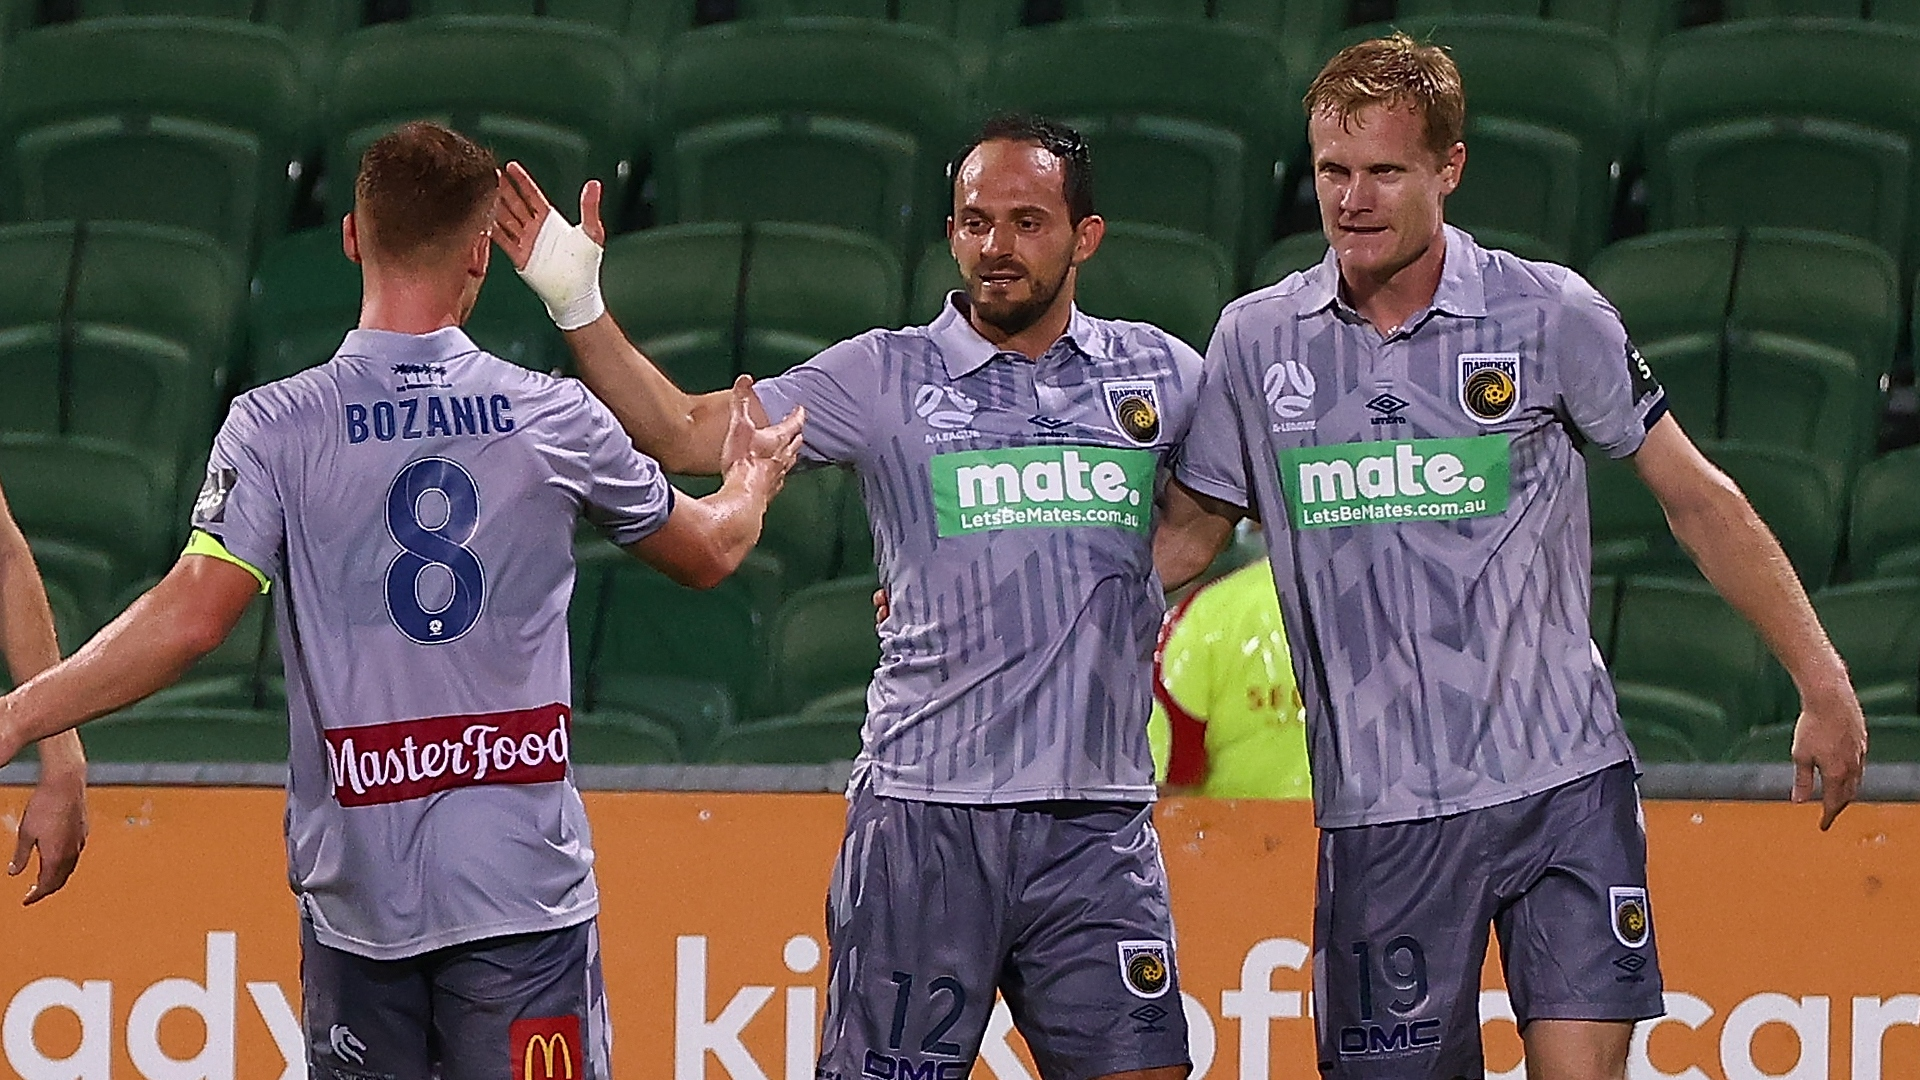 A-League: Mariners extend lead, Maclaren at the double for City